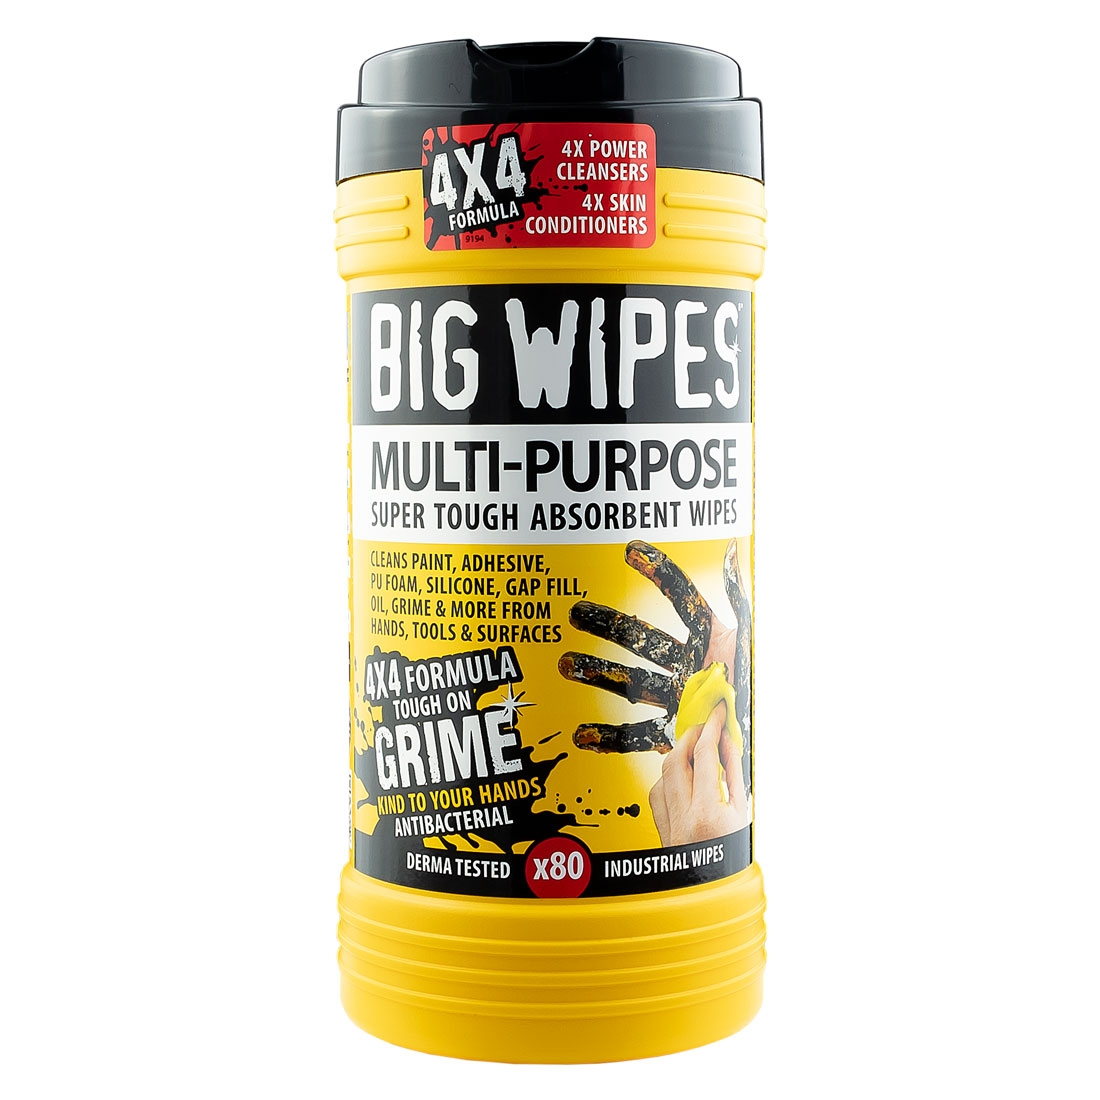 BIG WIPES Multi-Purpose 4x4 Wipes - Black Top